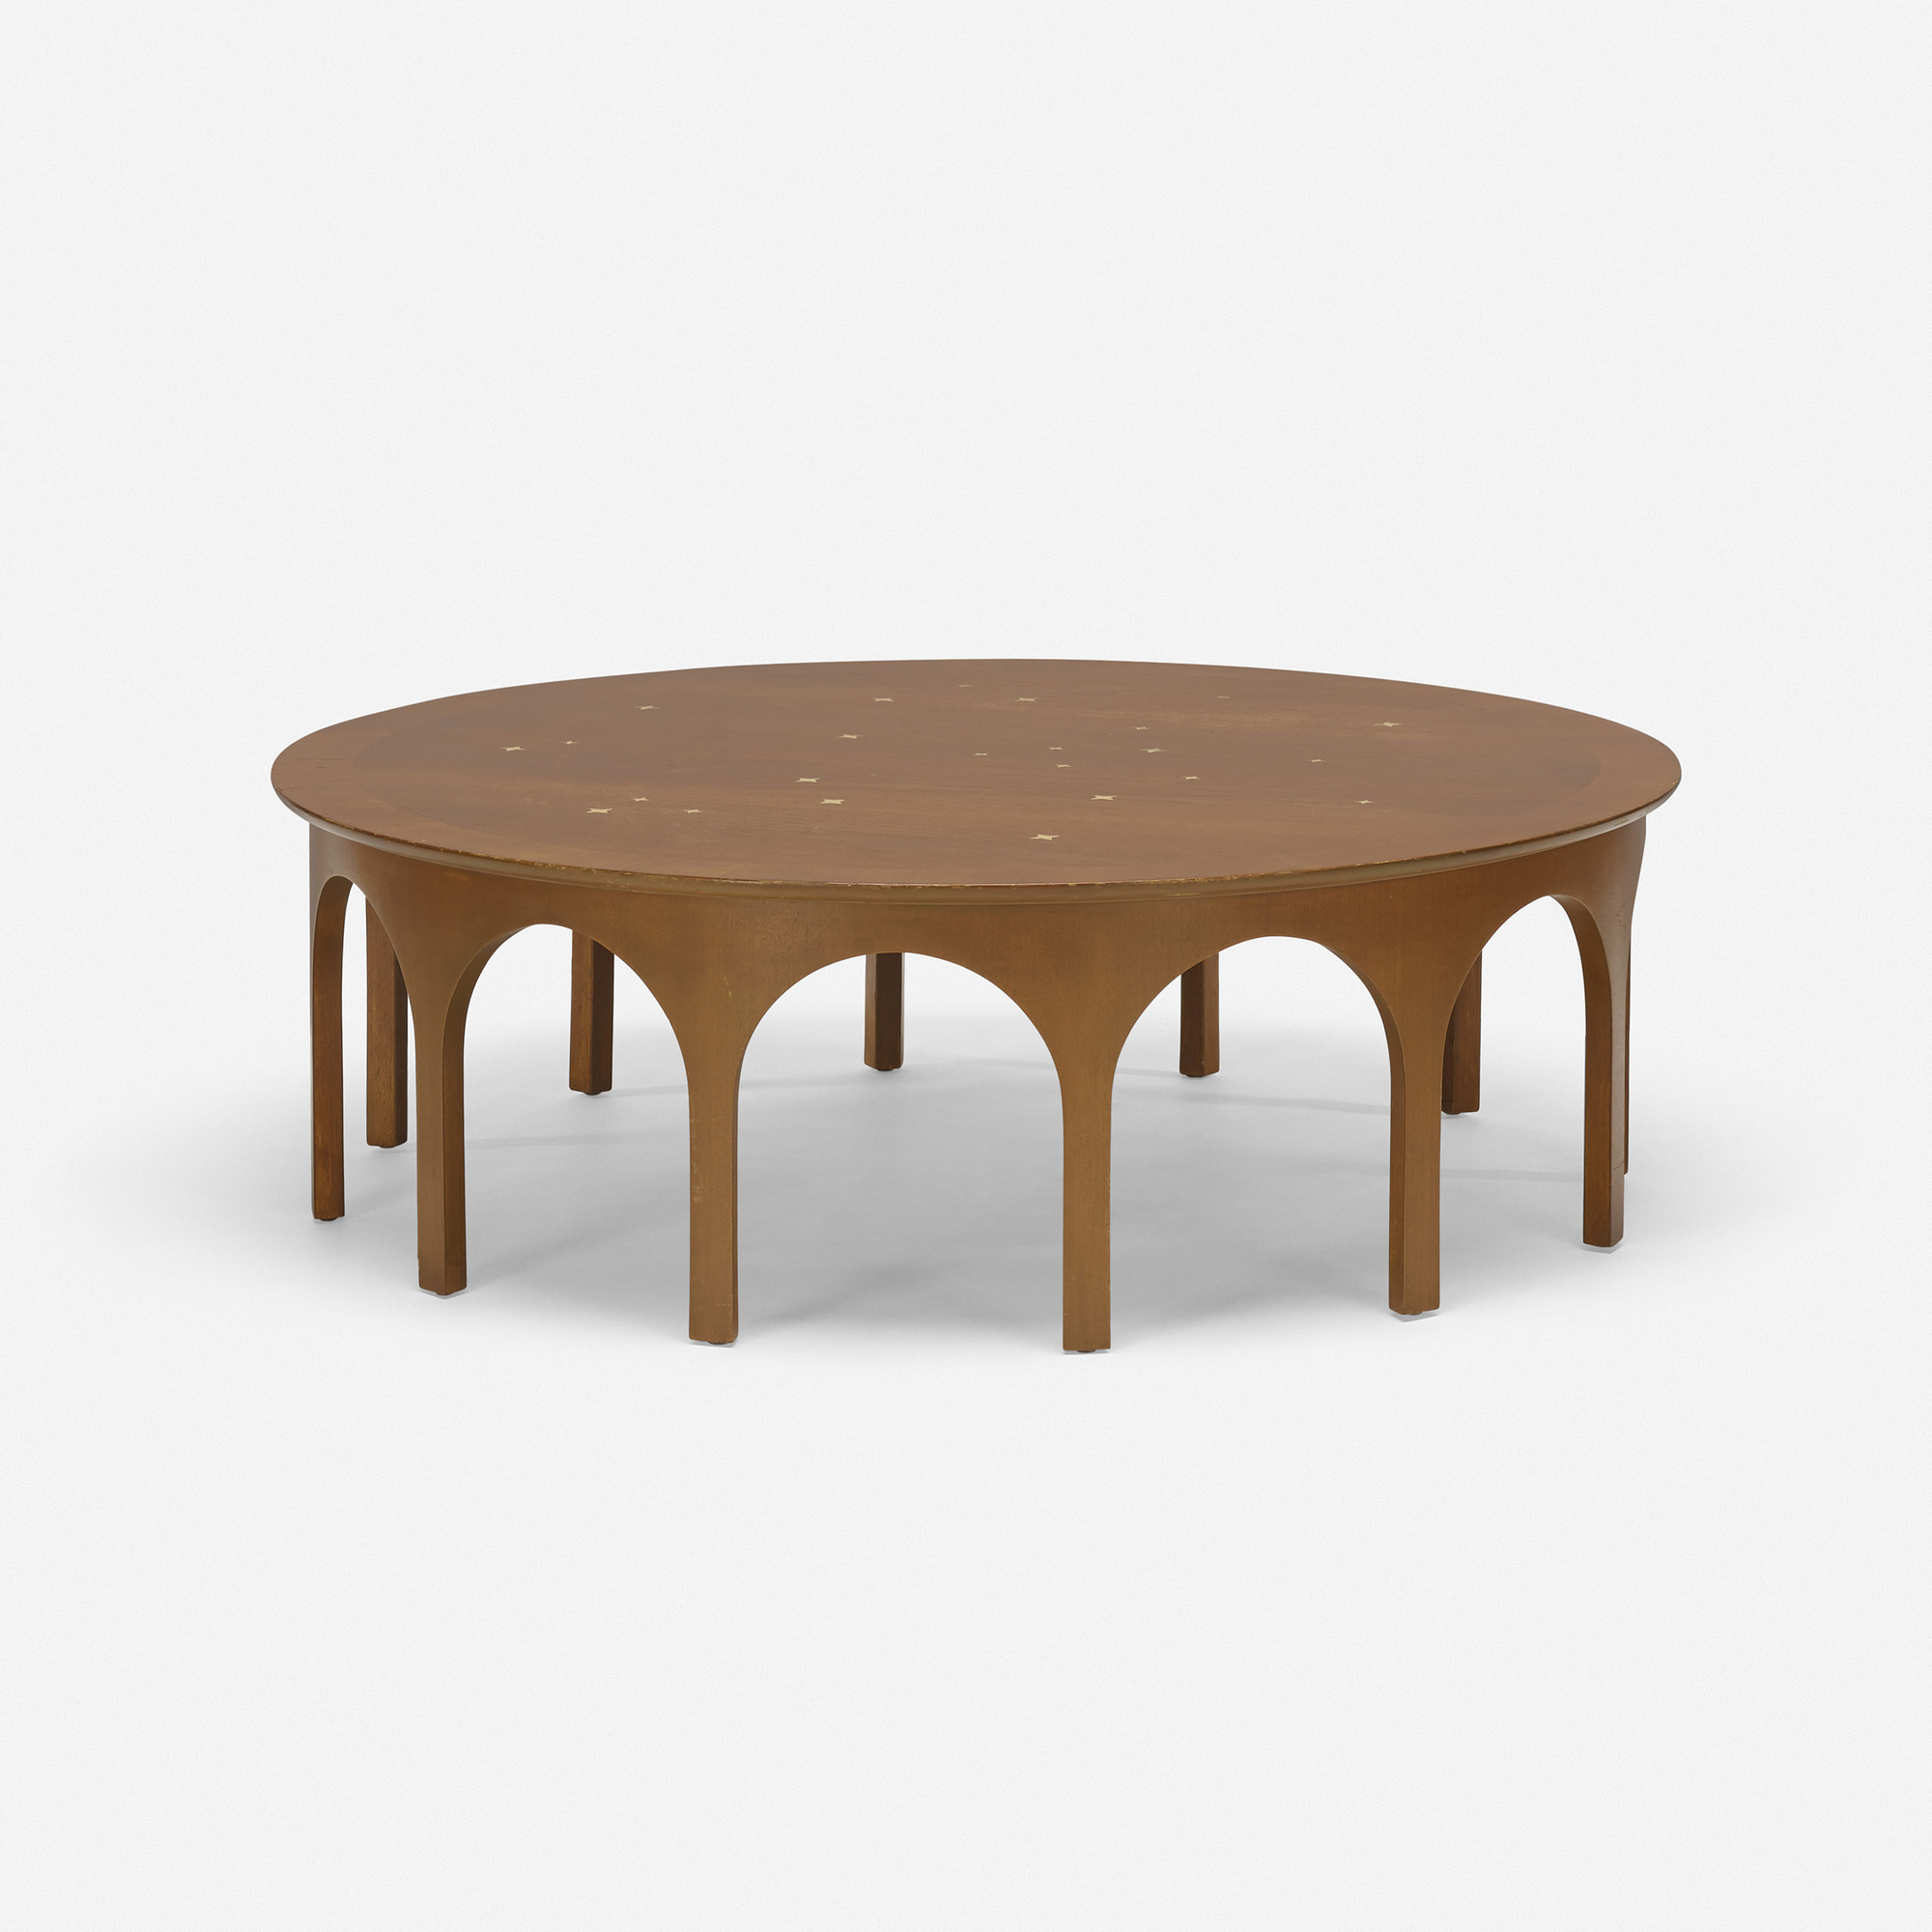 362: T.H. Robsjohn-Gibbings / Constellation coffee table (1 of 3)